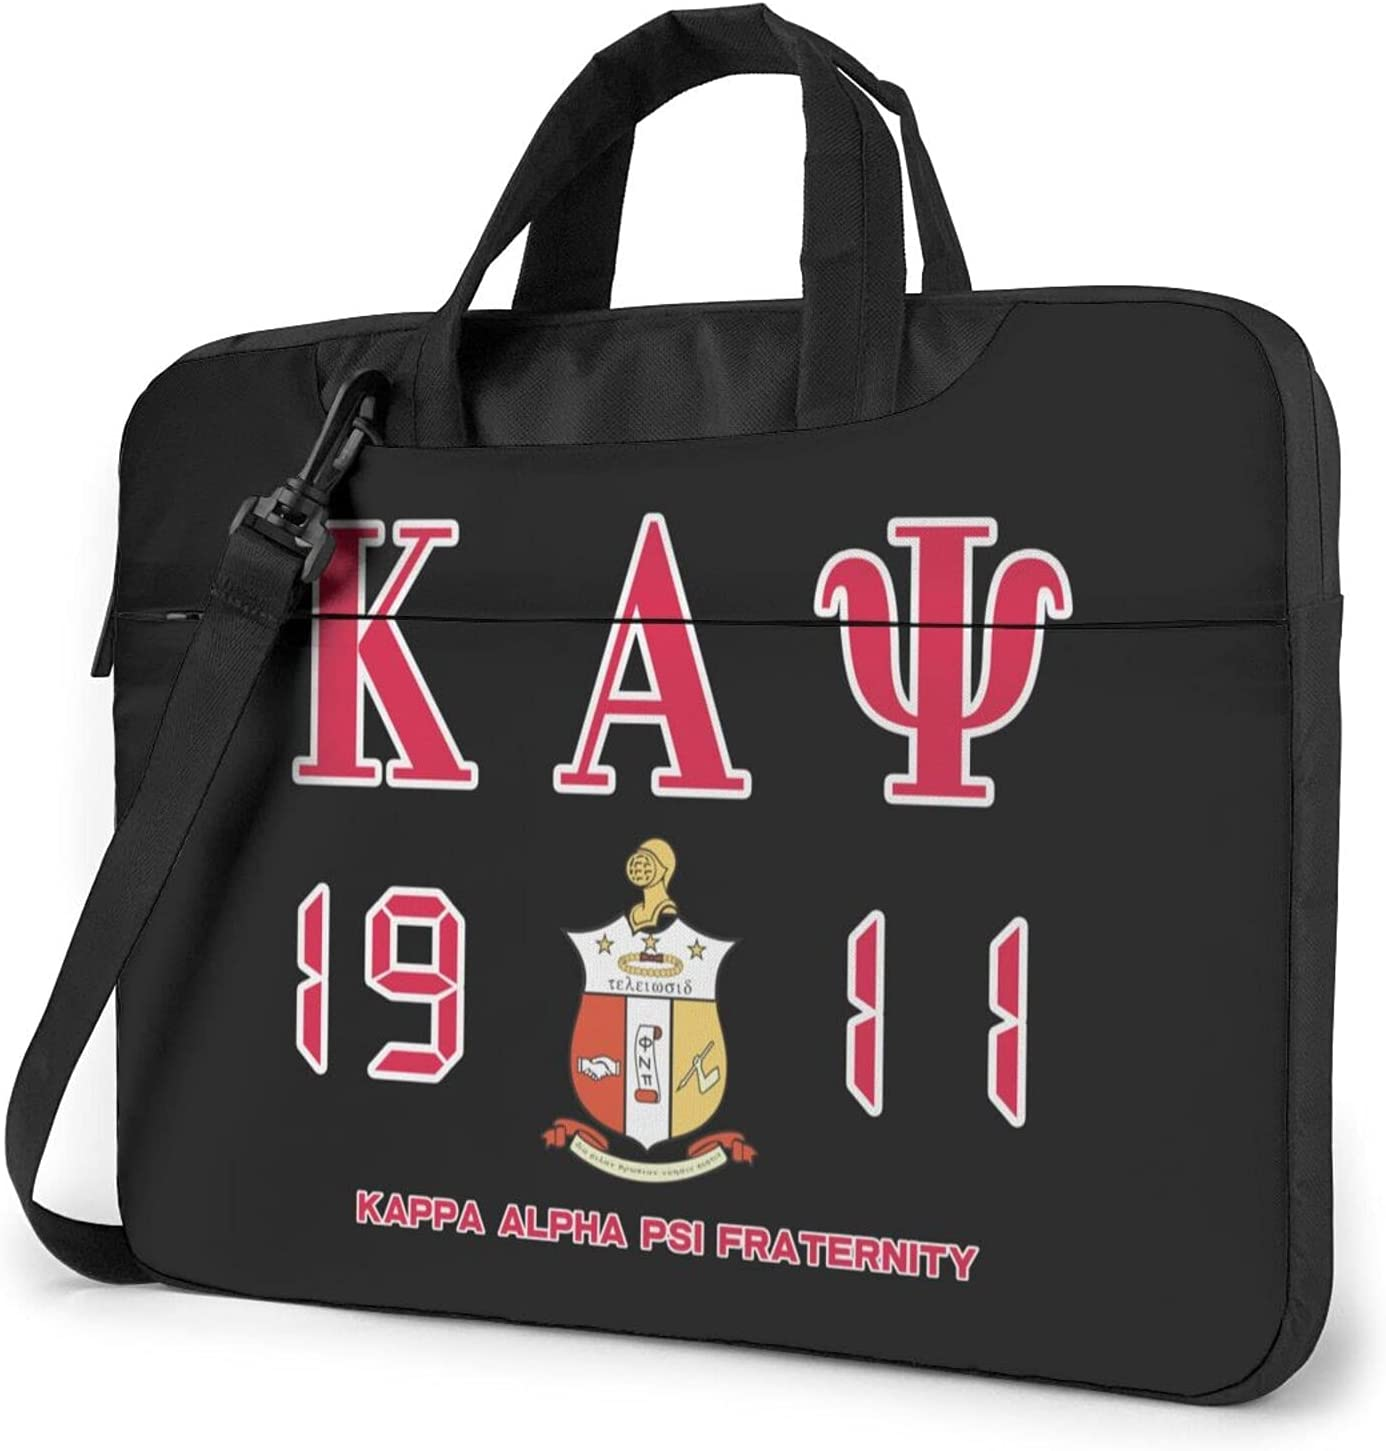 ZHUOBAIL Ka-pp_a Special price Bargain for a limited time A_lp-ha Ps-i 1911 S Fraternity Nupes KAP Laptop